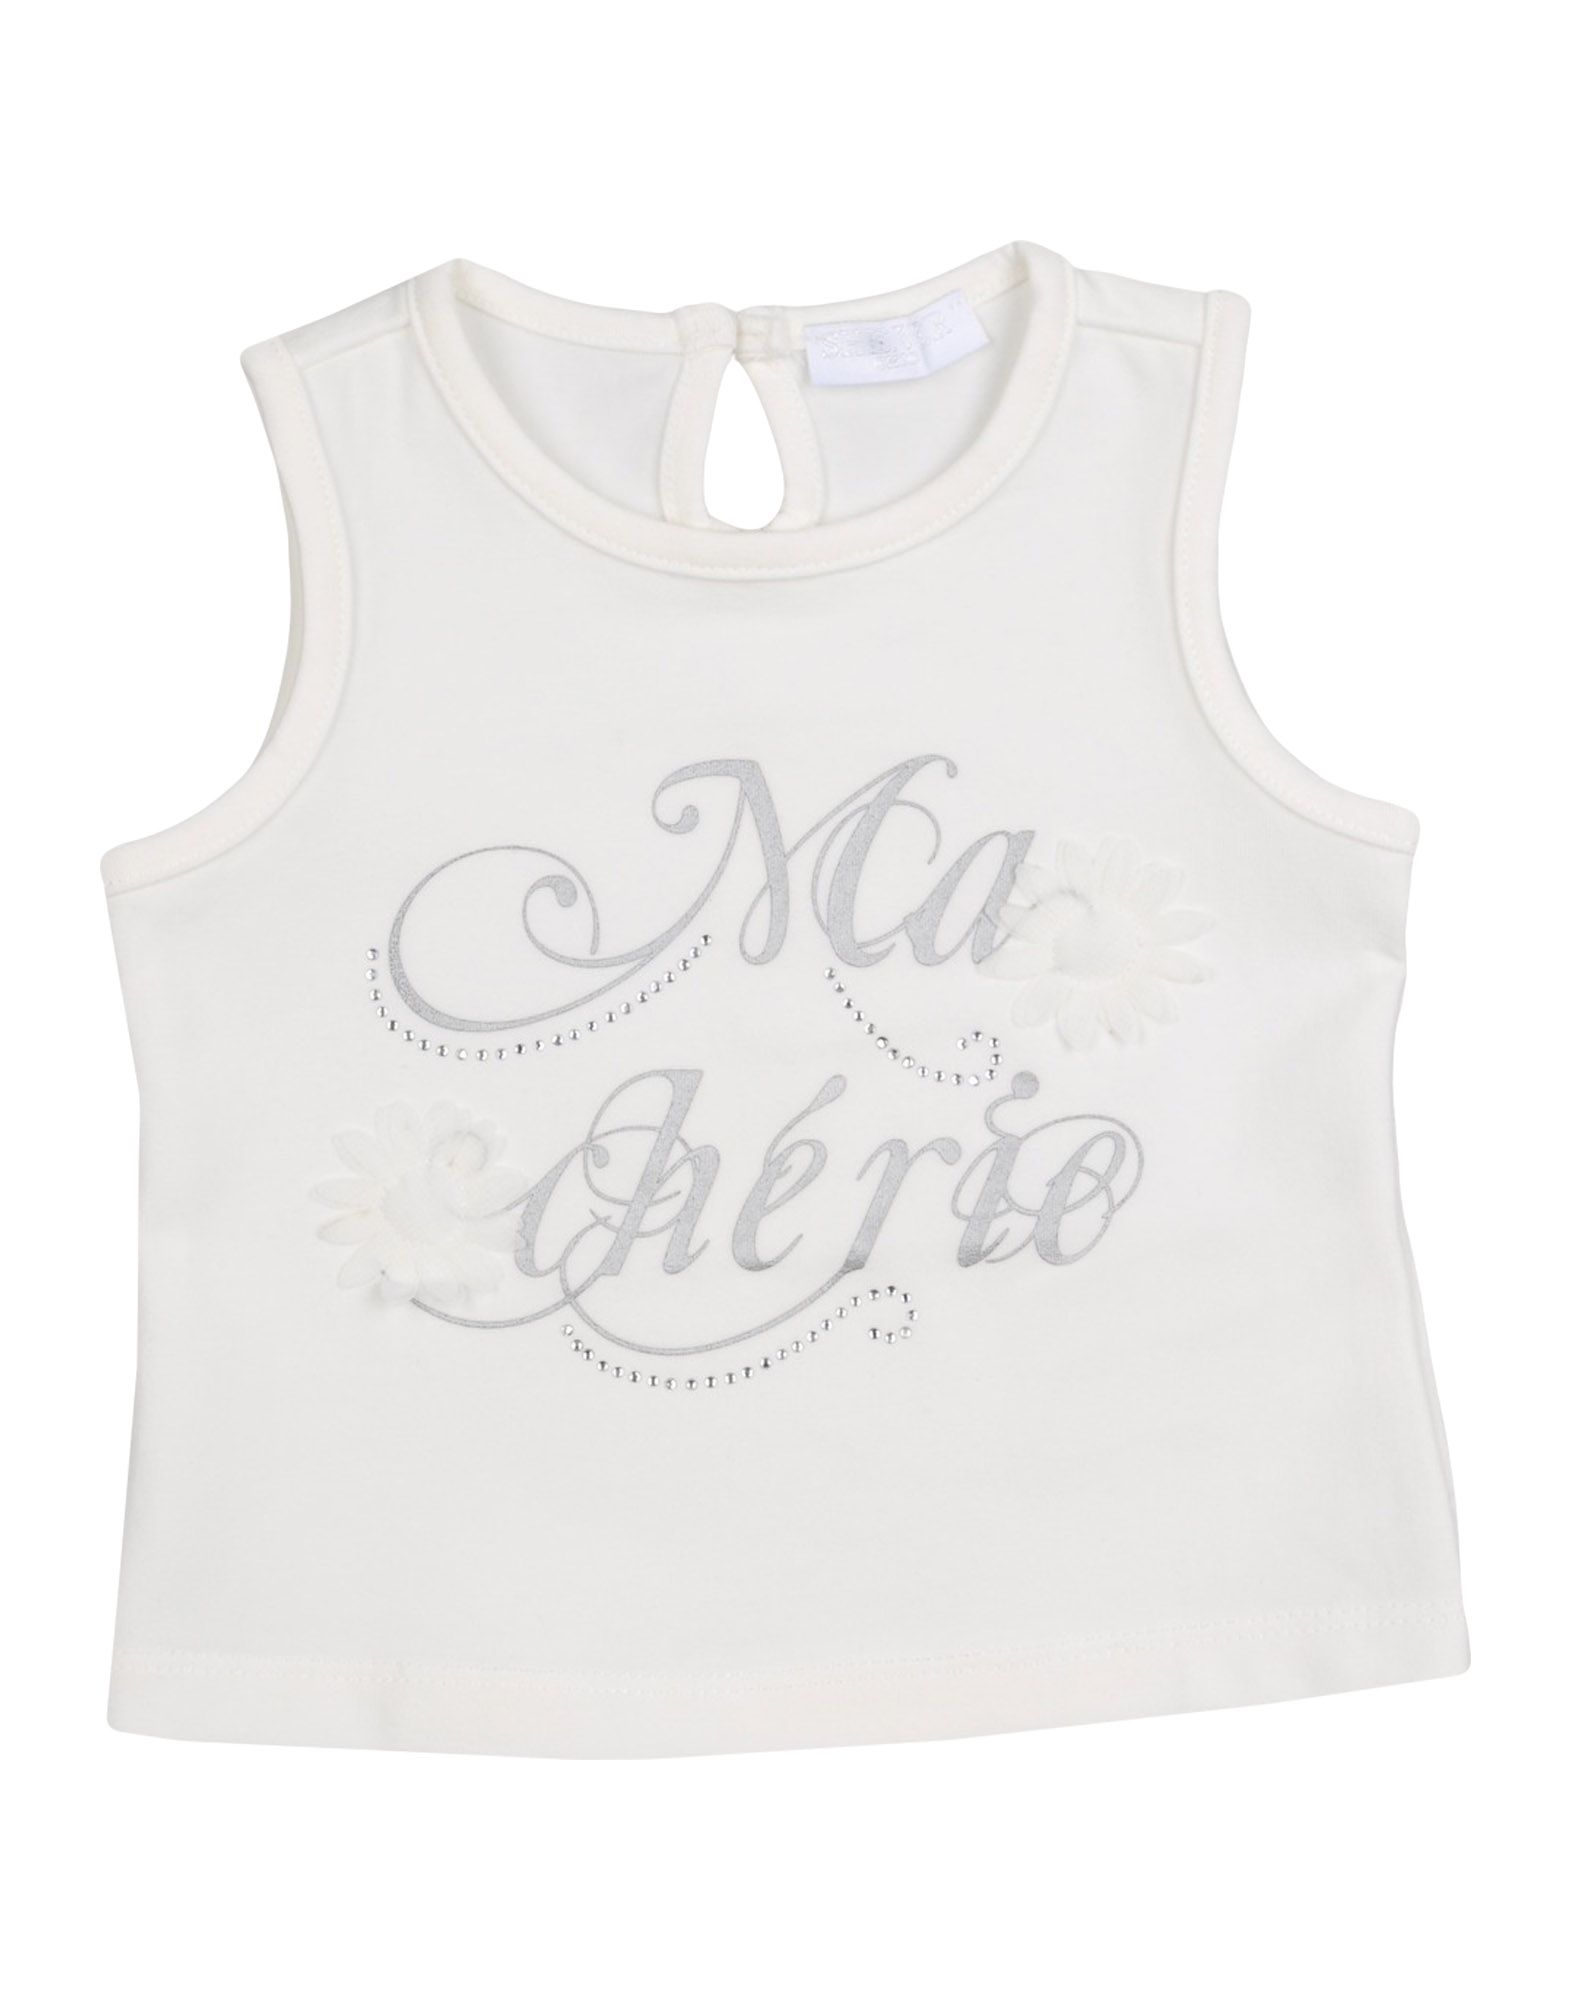 She.ver Chic Kids' She. Ver Chic T-shirts In Neutrals